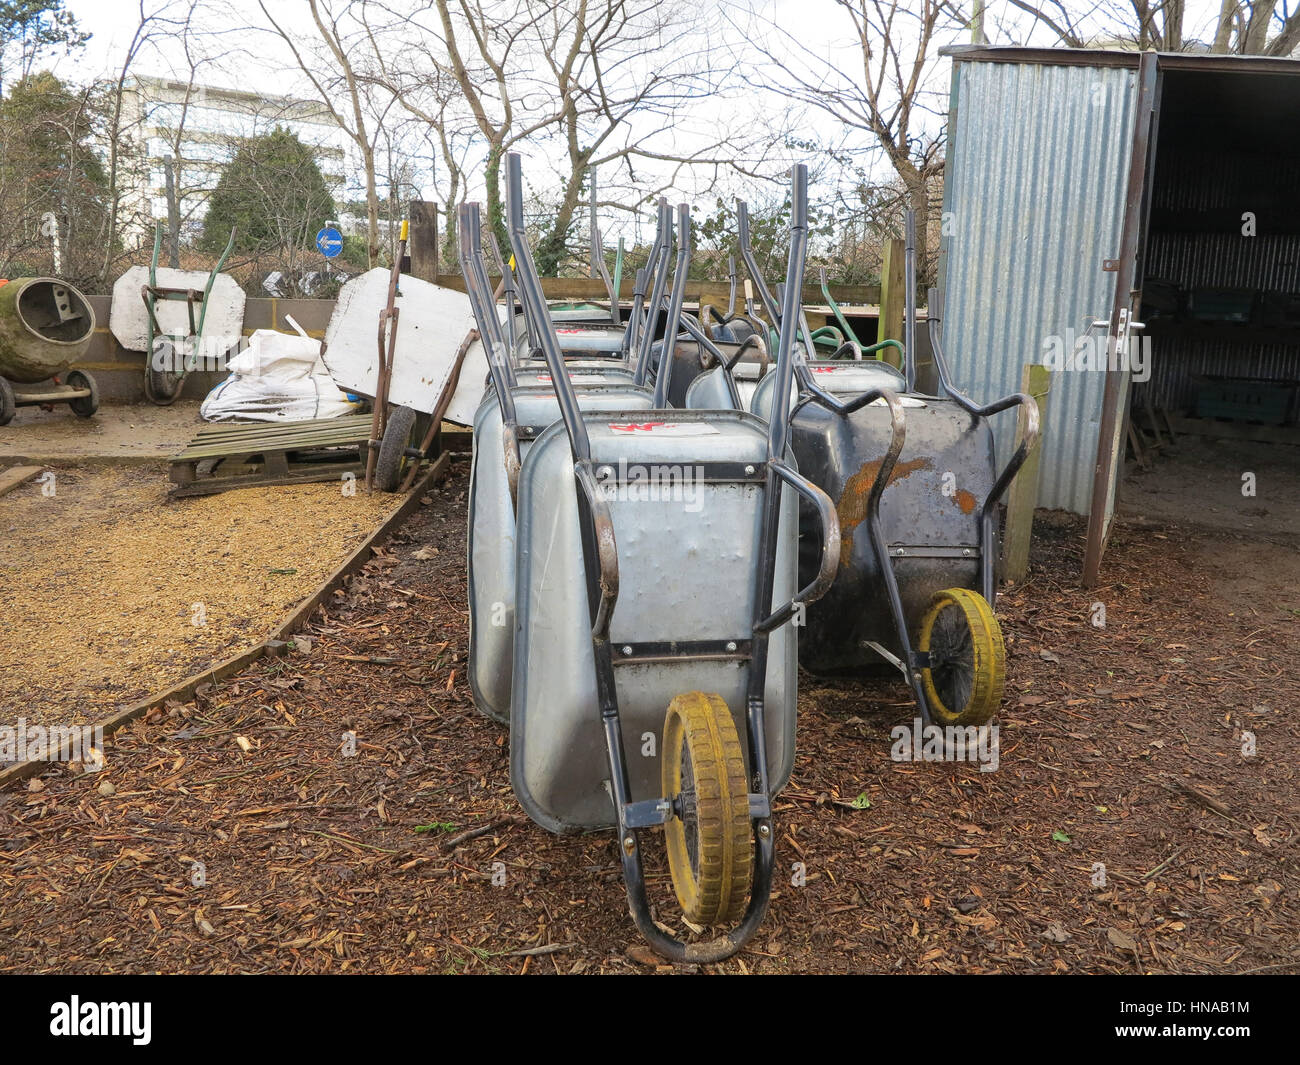 Row of steel wheelbarrows in school garden - Stock Image